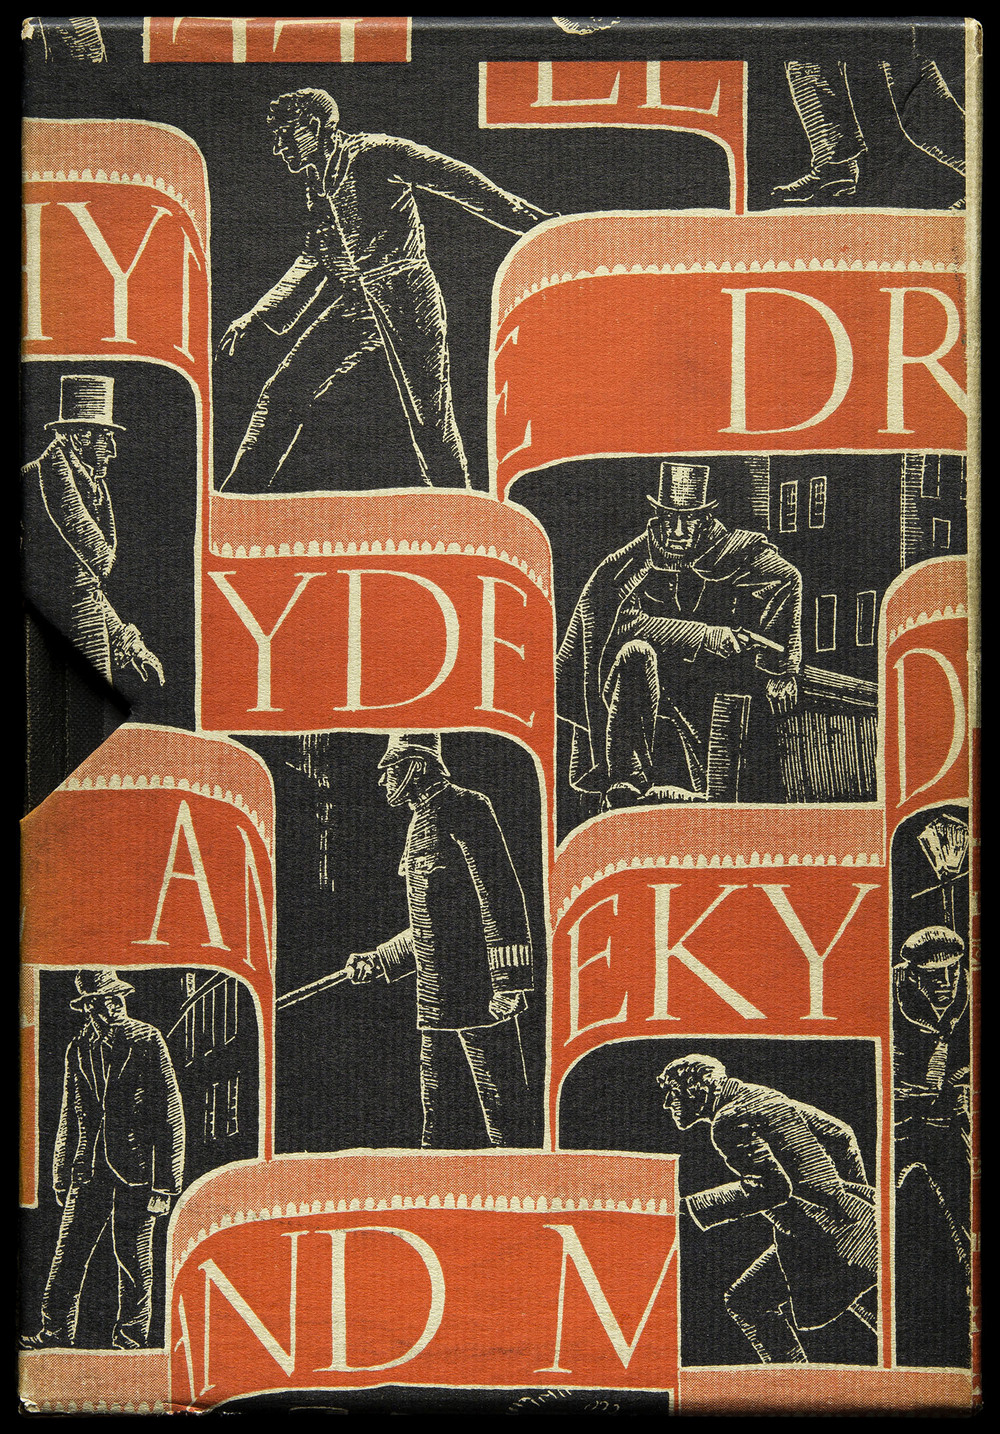 Slipcase for  Strange Case of Dr. Jekyll and Mr. Hyde  by Robert Louis Stevenson, Random House, New York, 1929, 14 x 20.3 cm